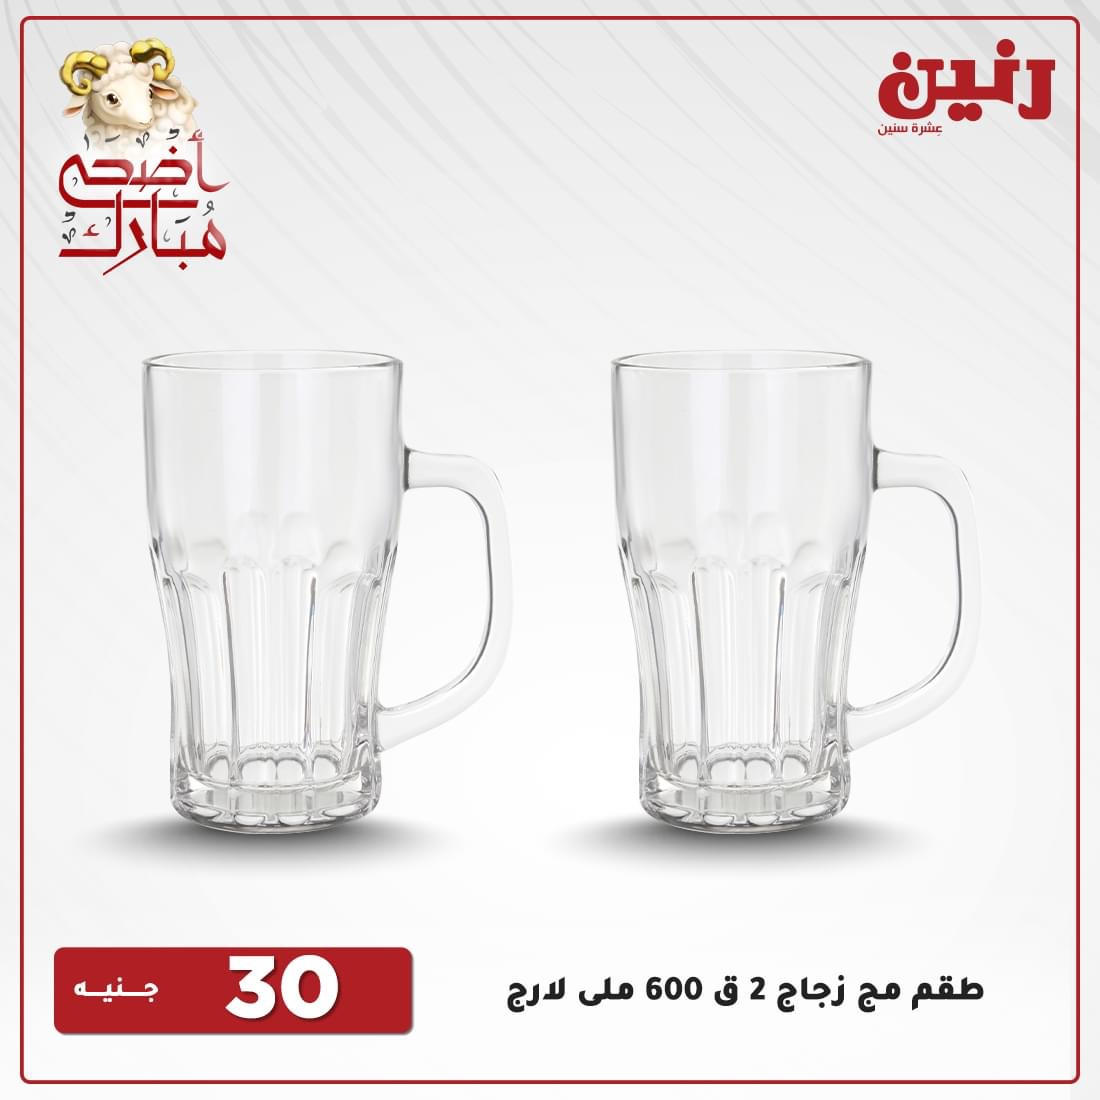 Raneen offers today for appliances and household appliances from July 22 to 24, 2021 6